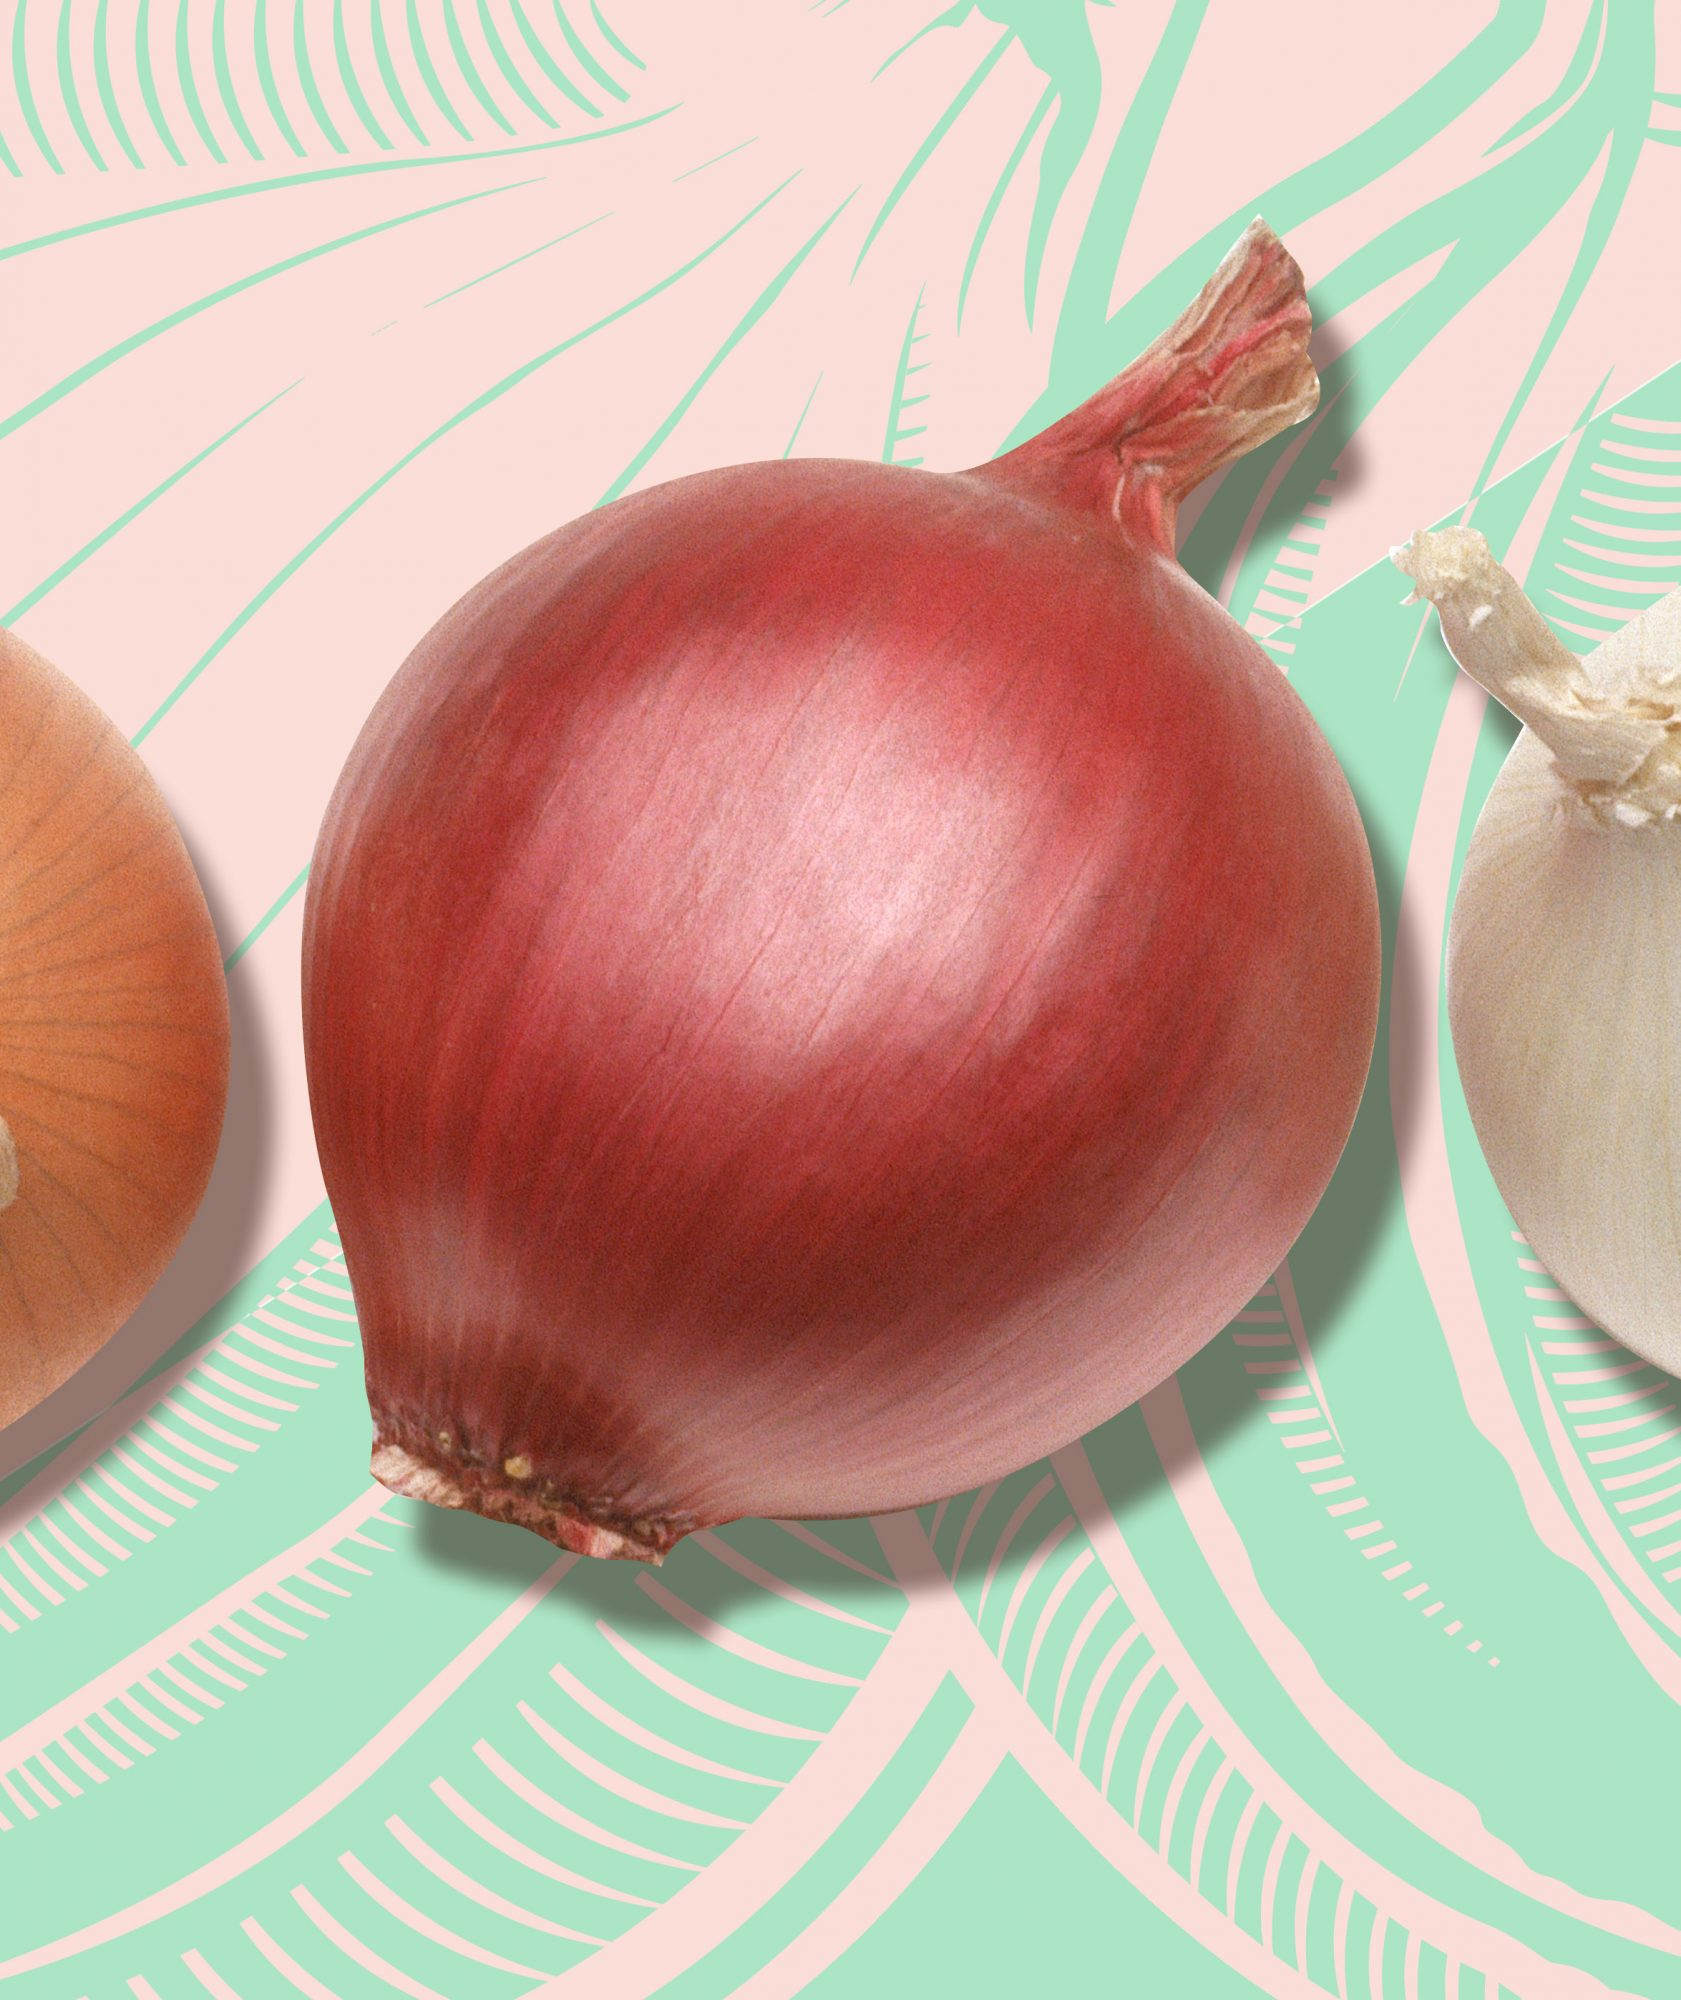 These Are the 10 Types of Onions Worthy of Your Favorite Dishes